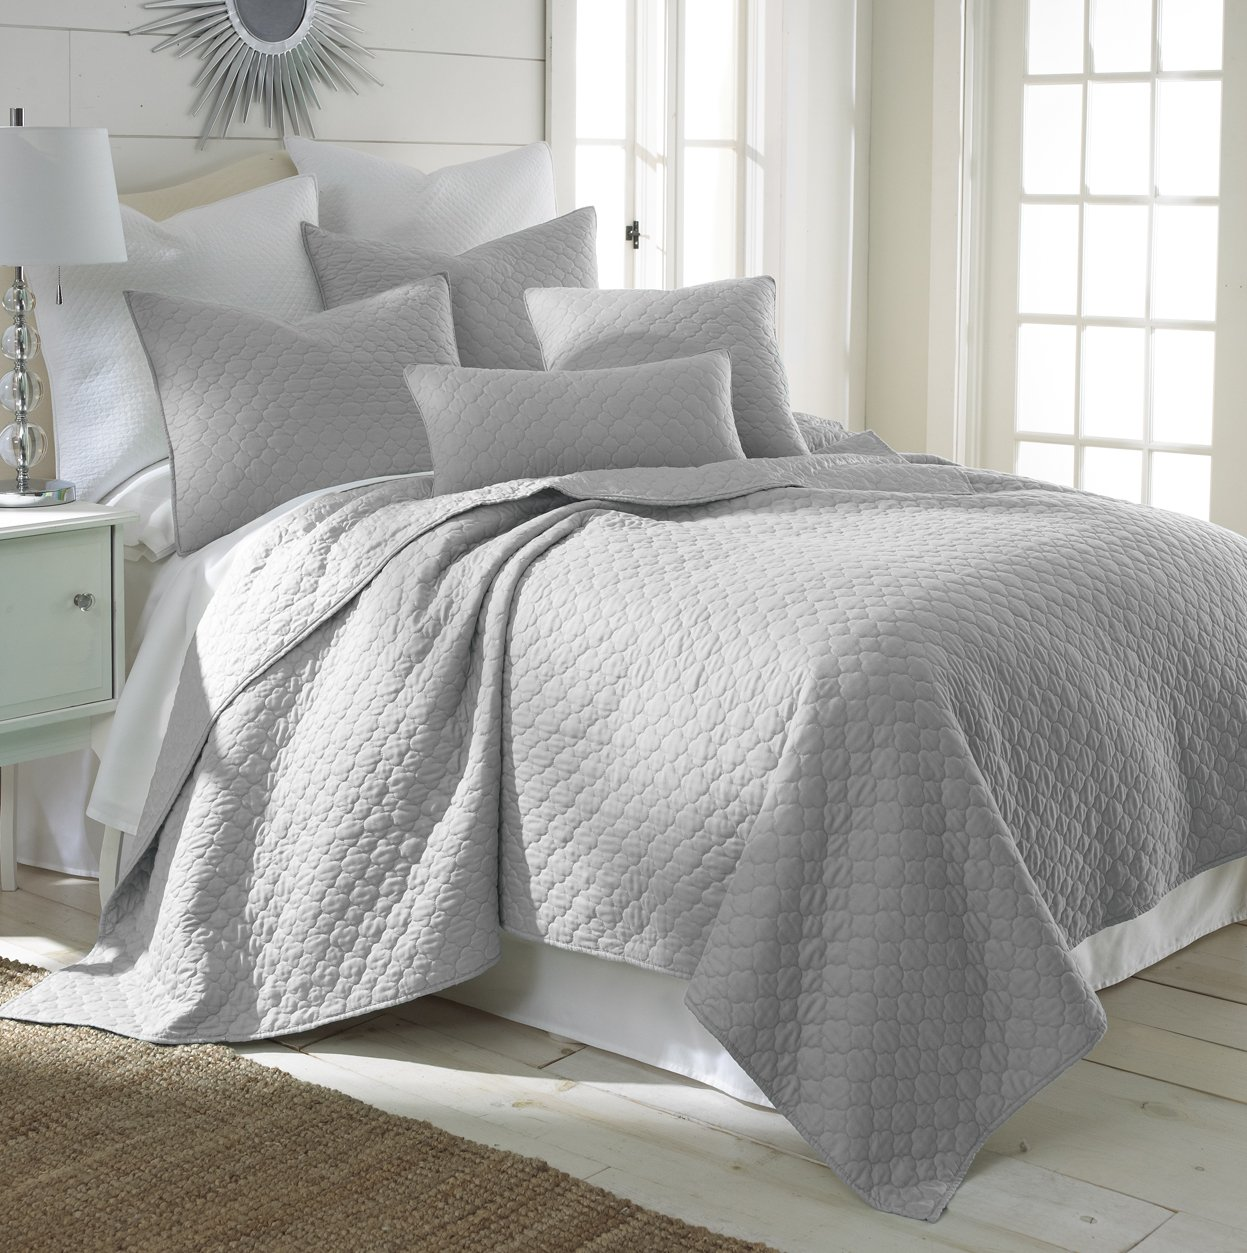 Gray White Quilt : The gallery for gt light grey bedding